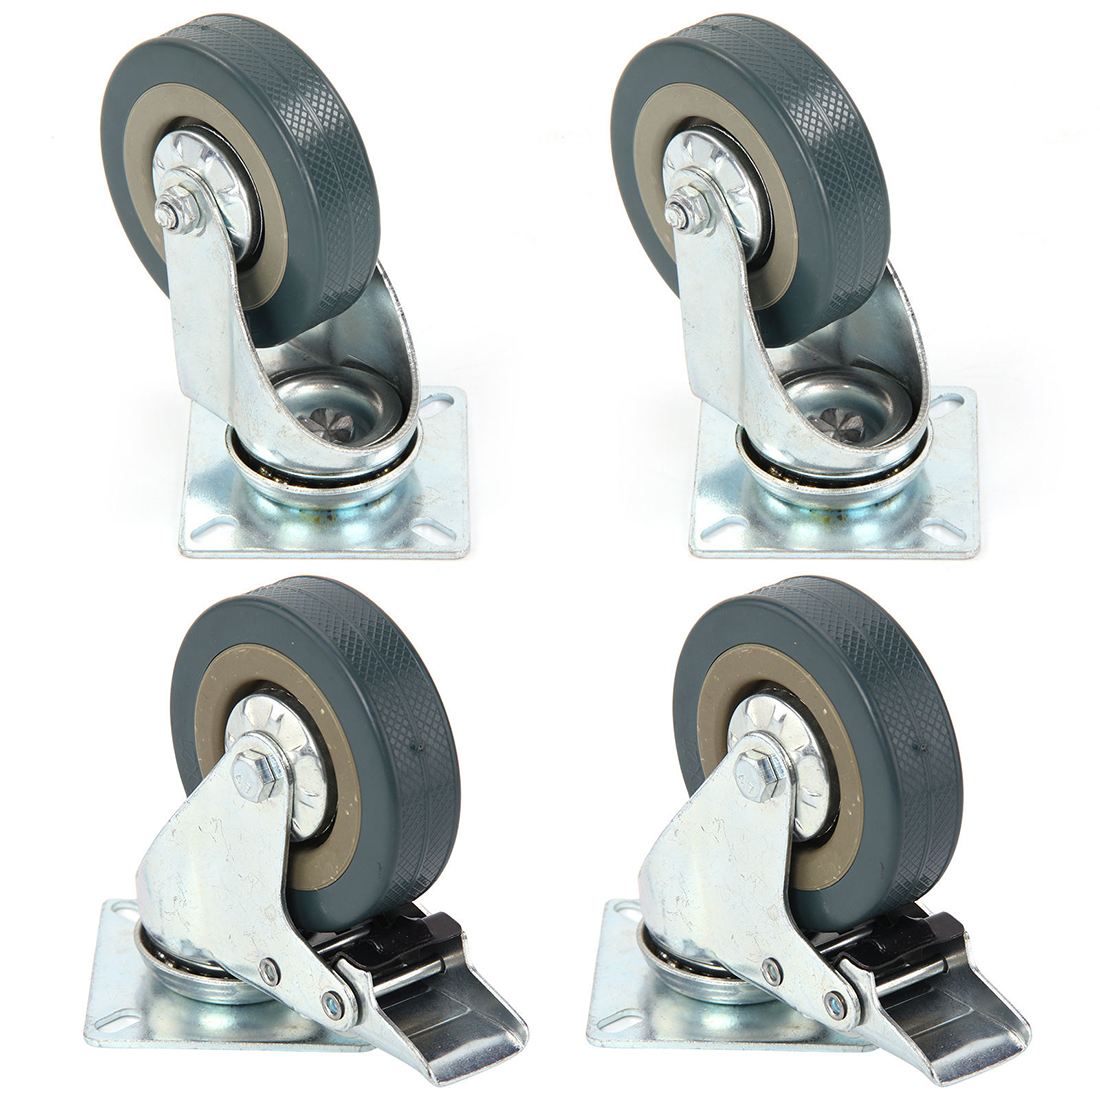 Set Of Heavy Duty 2.5/3/4/5 Inch Rubber Swivel Castor Wheels Trolley Caster Brake 2 With Brake + 2 Without Brake Universal Wheel